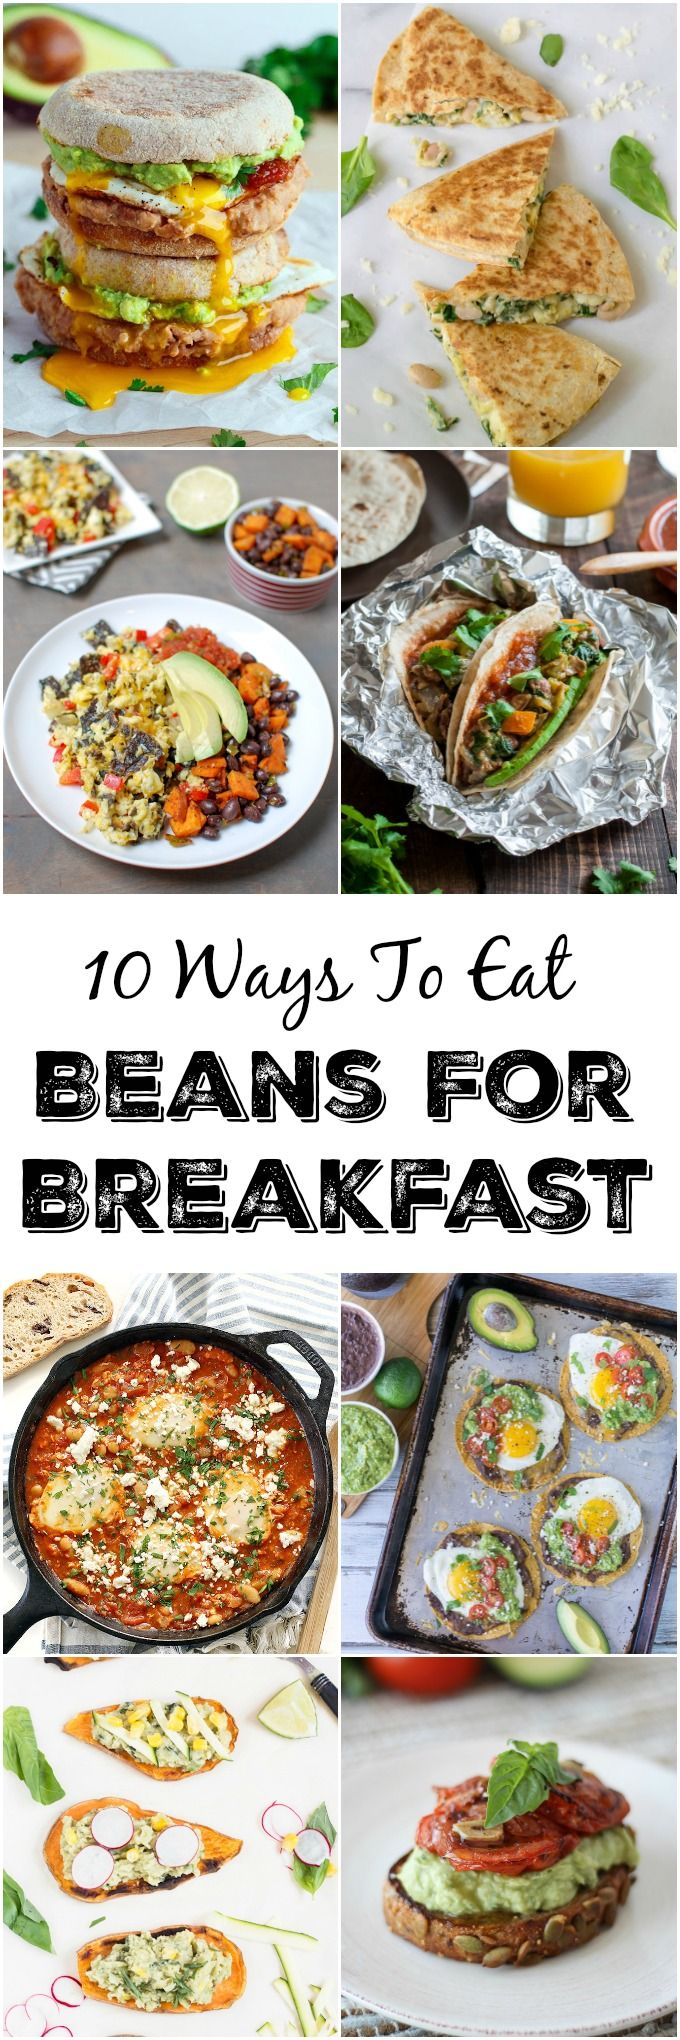 10 Ways to Eat Beans For Breakfast - Start your day with these easy recipes that are full of protein and fiber! (AD)